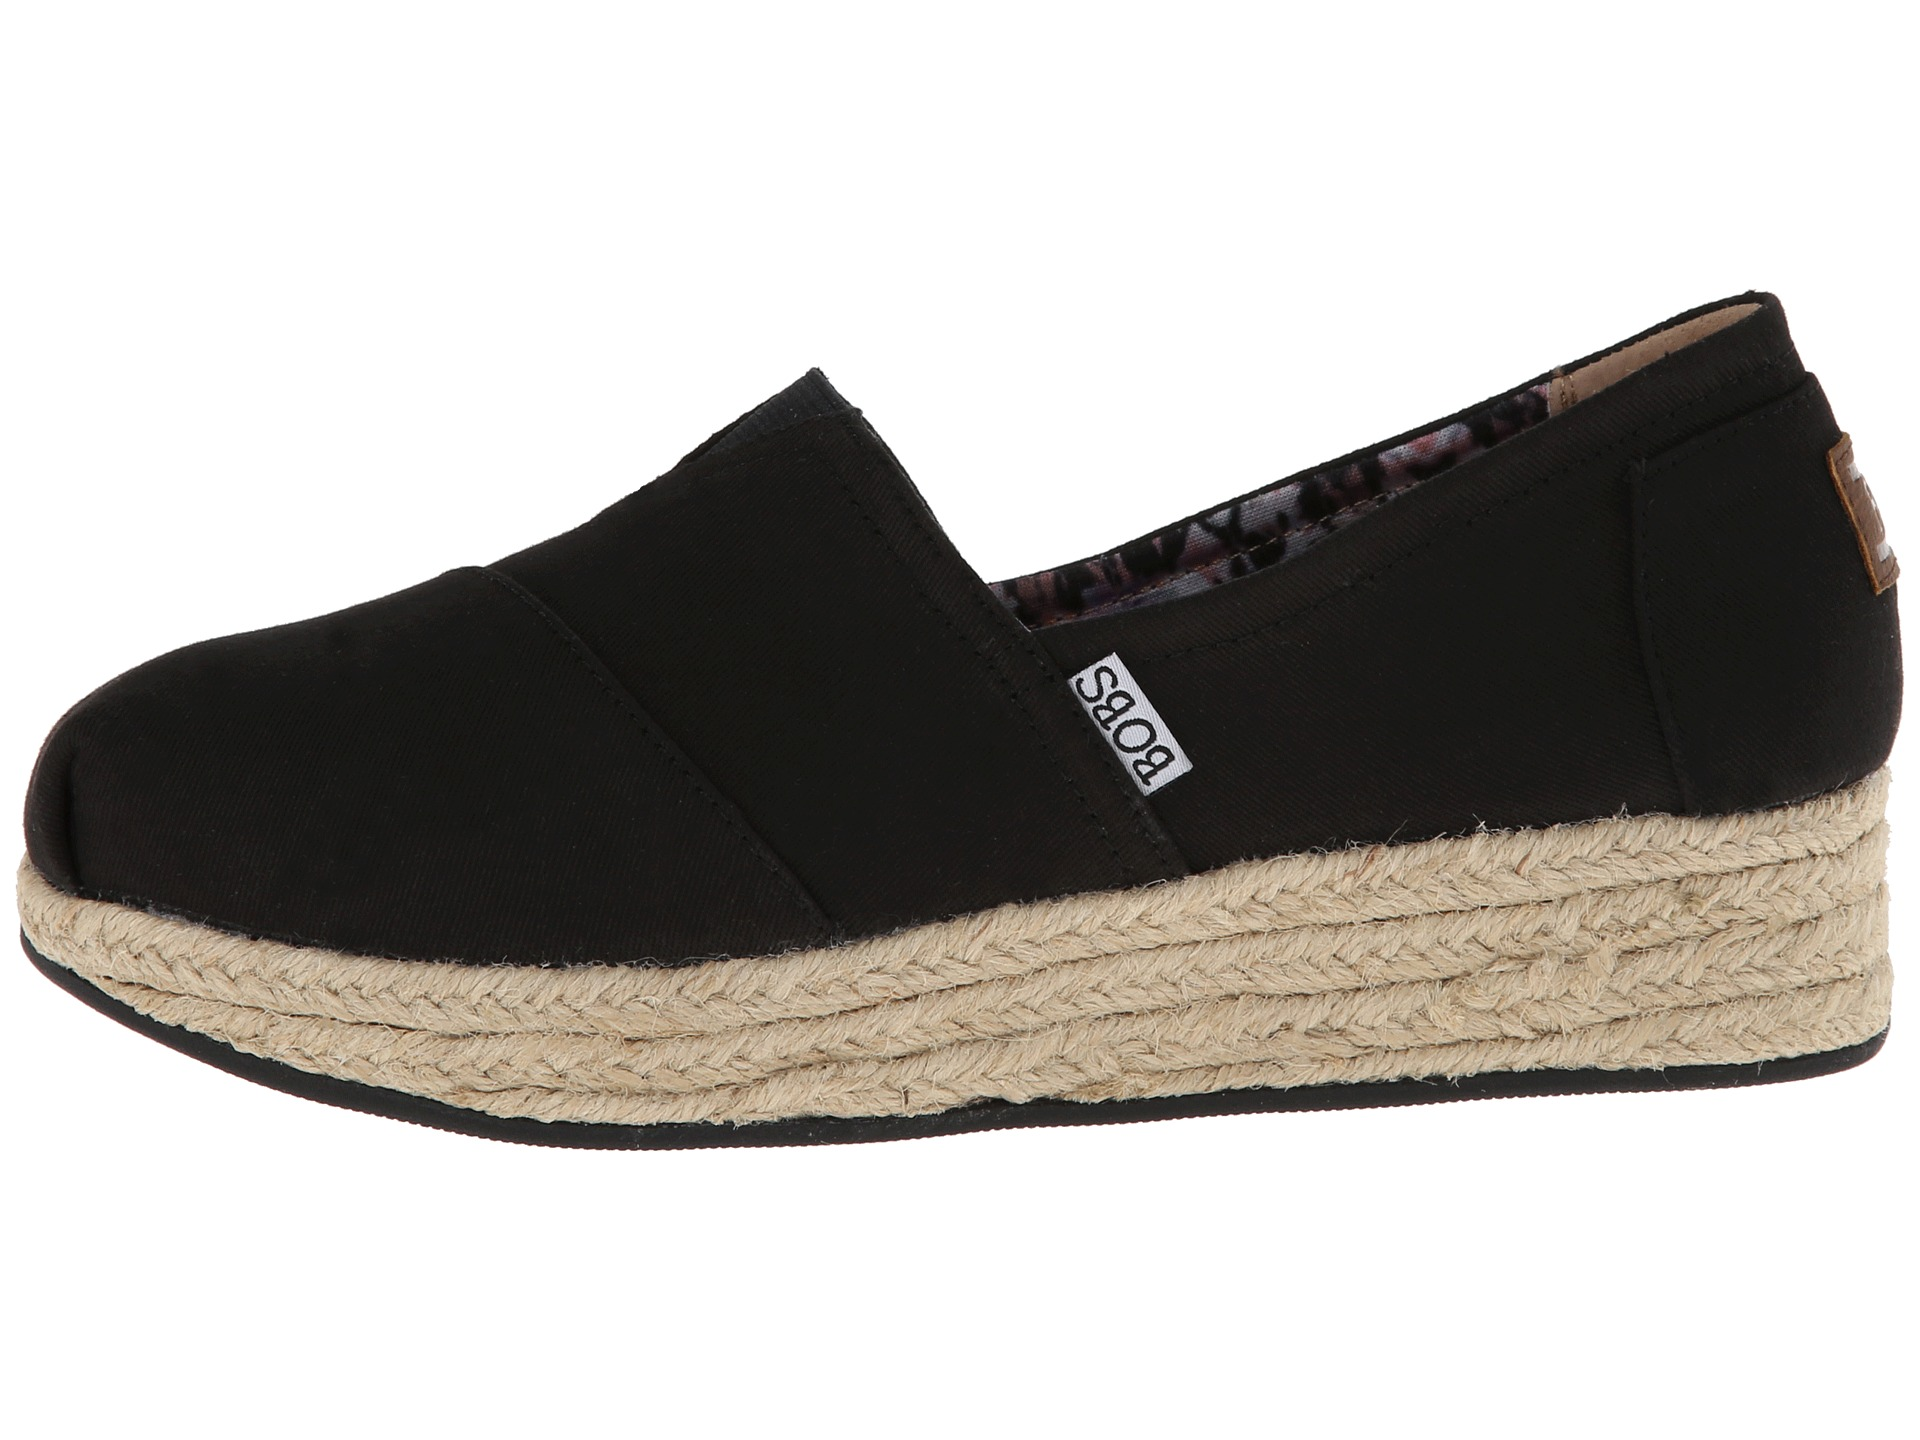 bobs from skechers wedge espadrille memory foam zappos. Black Bedroom Furniture Sets. Home Design Ideas